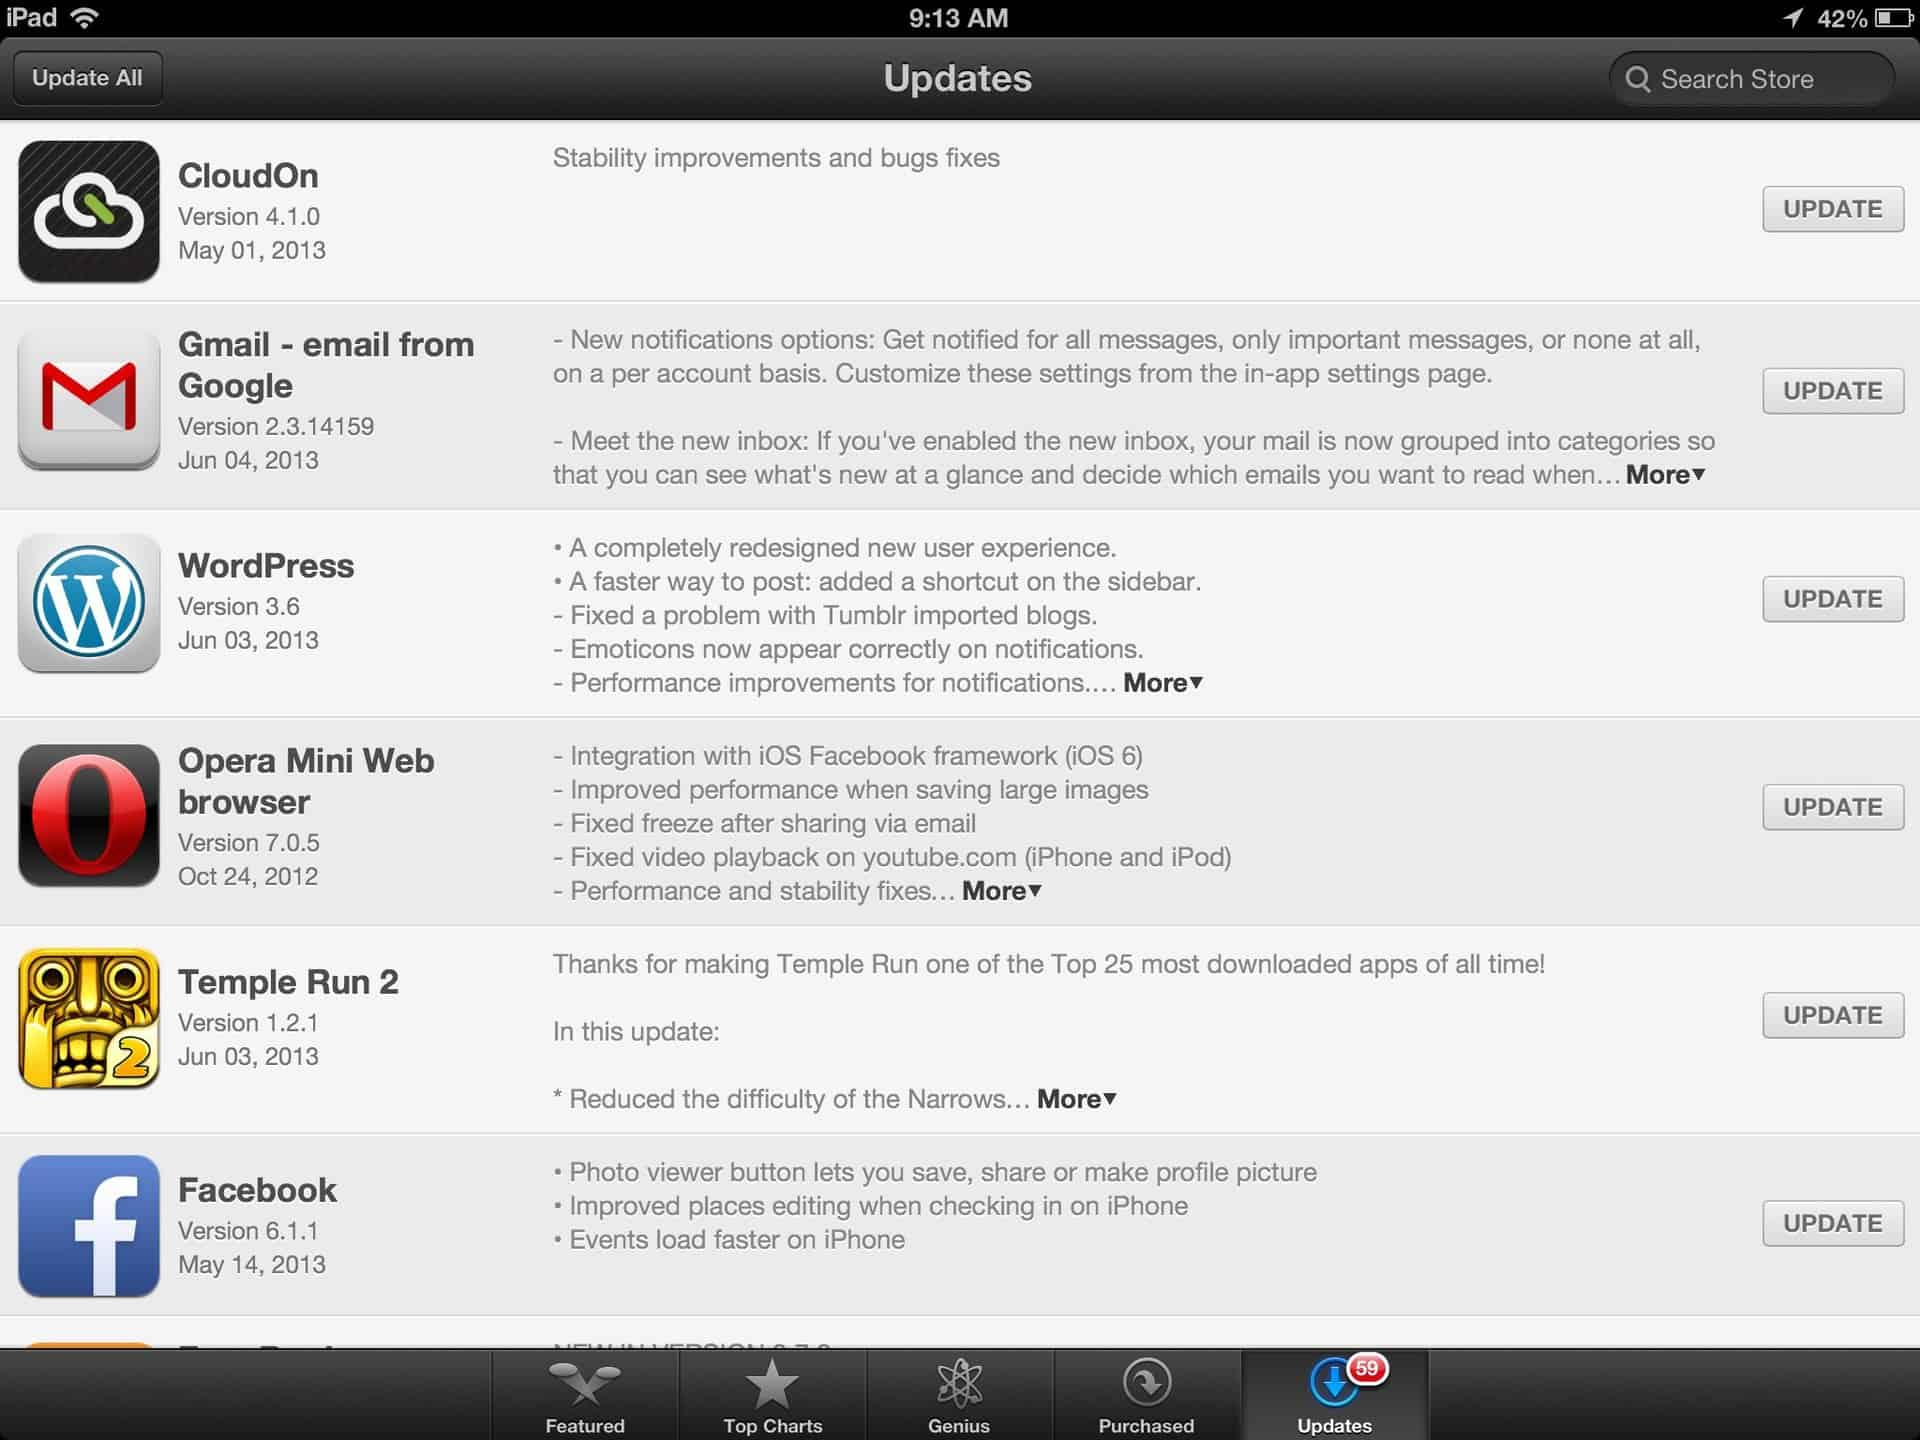 How to Update Apps on the iPad - Ipadastic